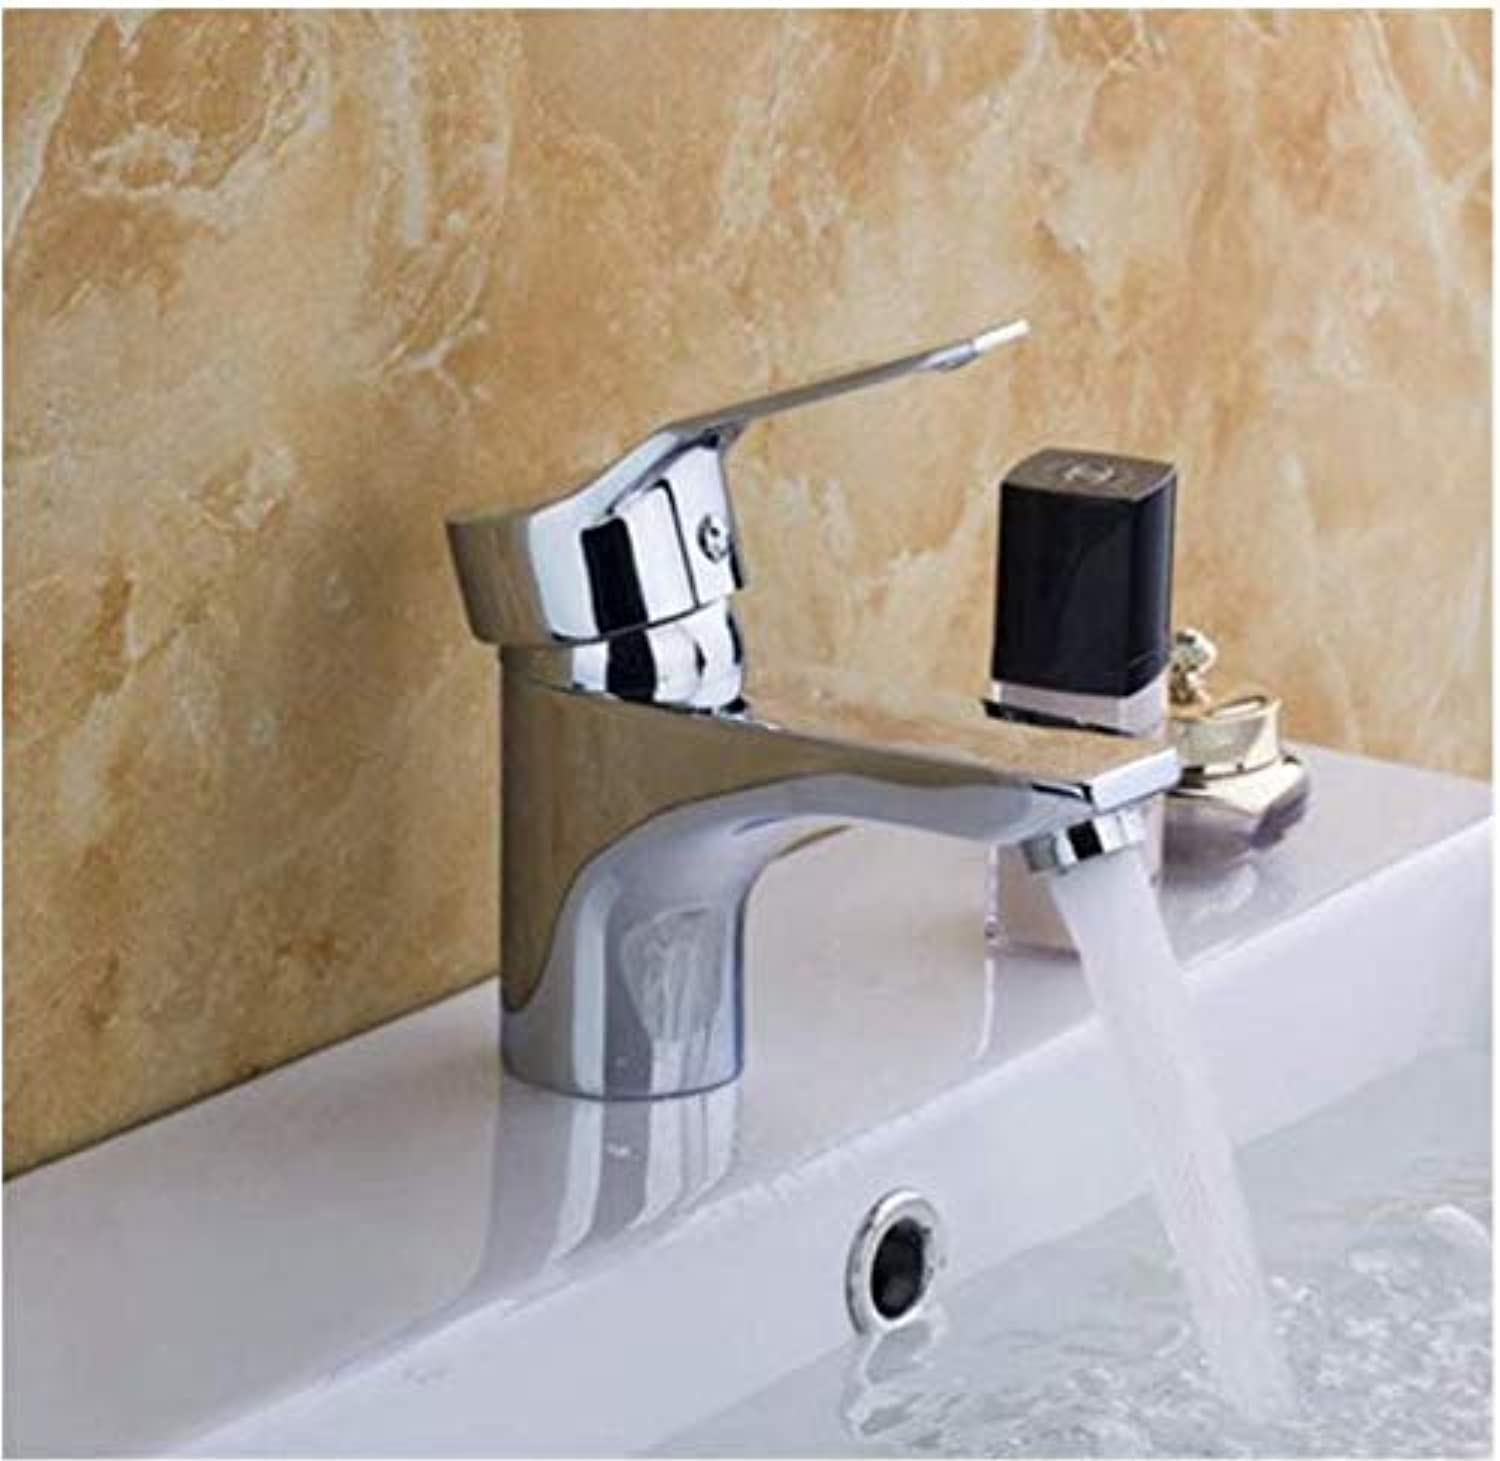 Faucet Lead-Free Square Innovationbasin Single Handle Bathroom Wash Tap Zinc Faucets